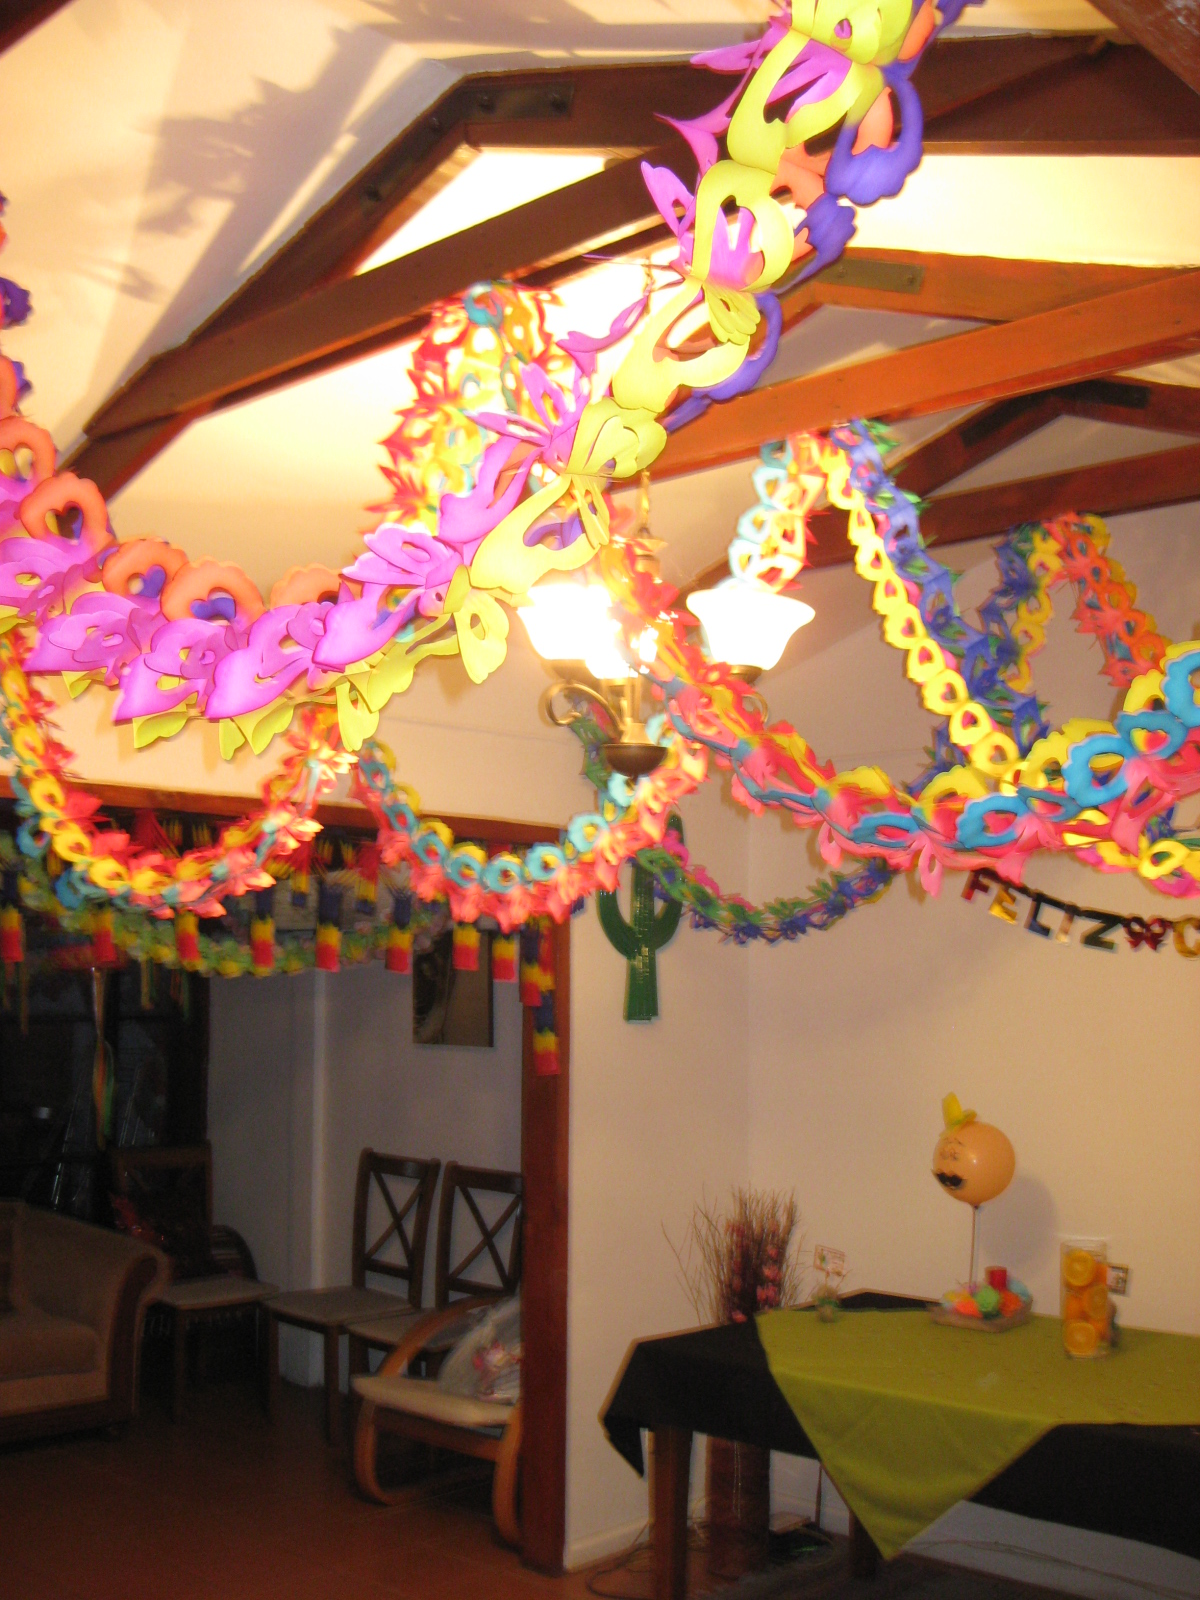 Decoraci n para fiesta mexicana pancho villa tu p rty for Adornos para decorar